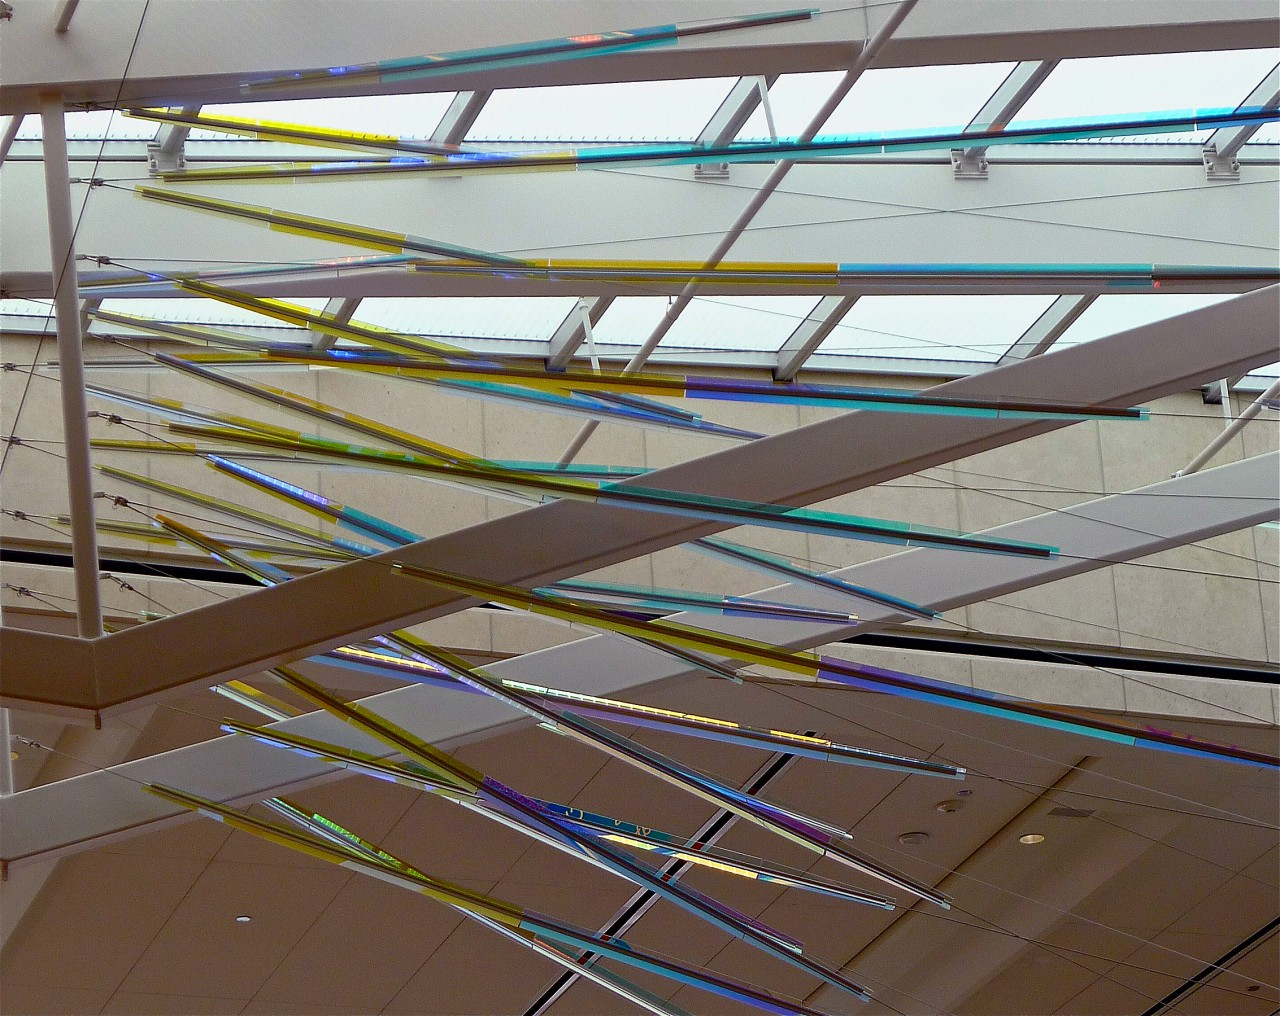 Close up view of Ed Carpenter's McCarran airport skylight art inner layer of cable-mounted glass panels whose colors and reflections transform themselves dramatically from various angles. / image 4